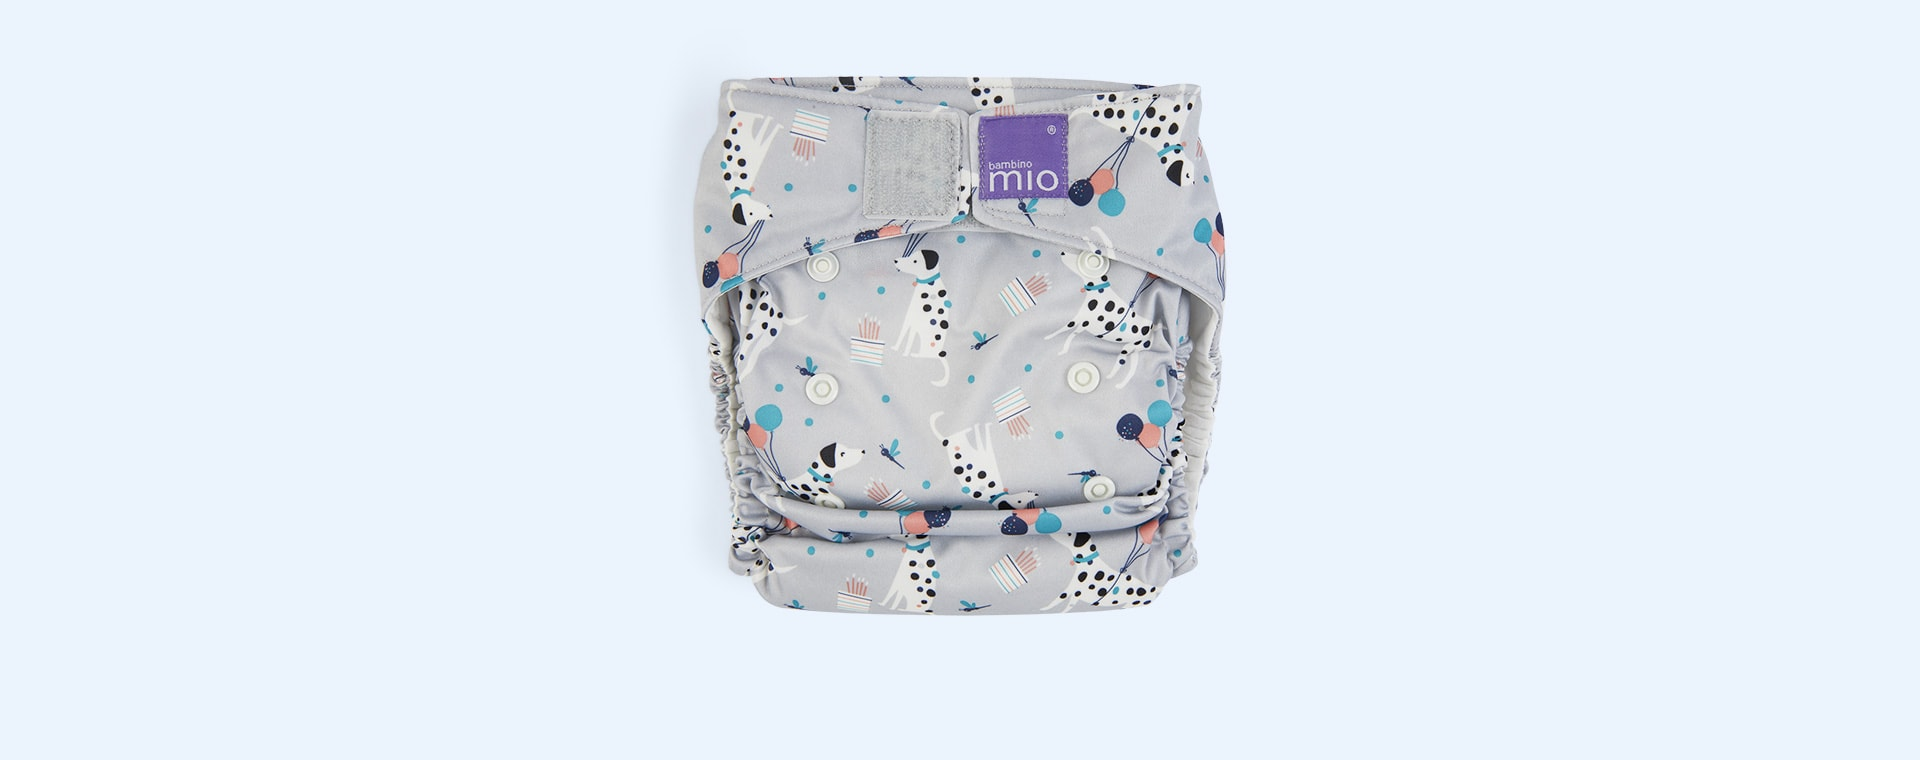 Puppy Party Bambino Mio Miosolo All-In-One Nappy